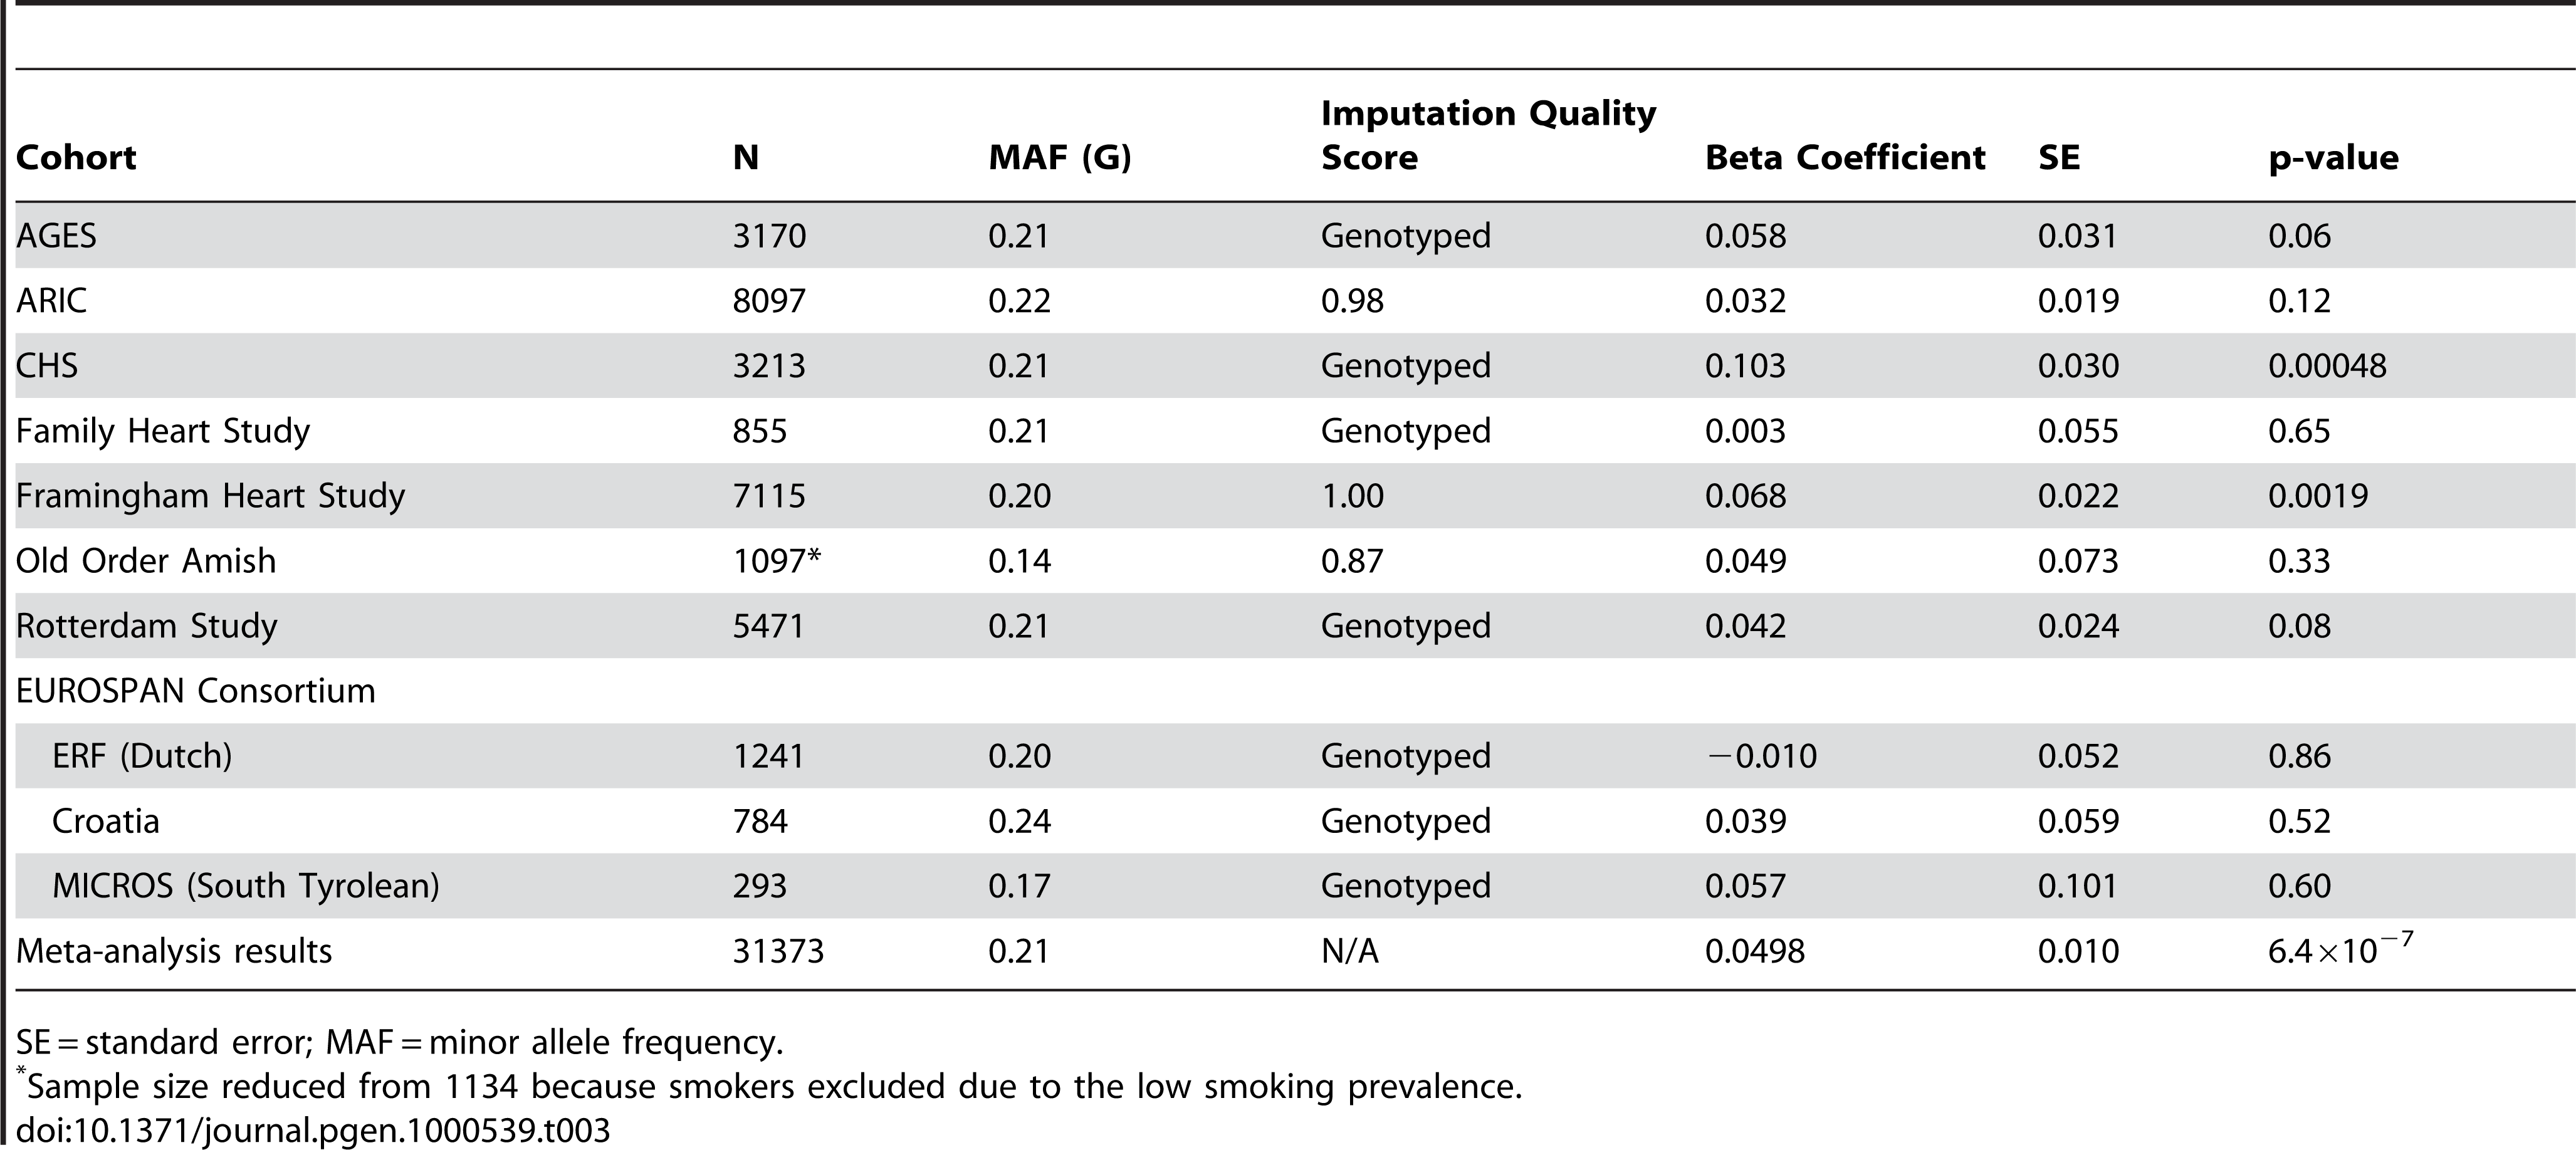 Results per copy of the G allele for rs10146997 by contributing study; beta coefficients expressed as z-scores.